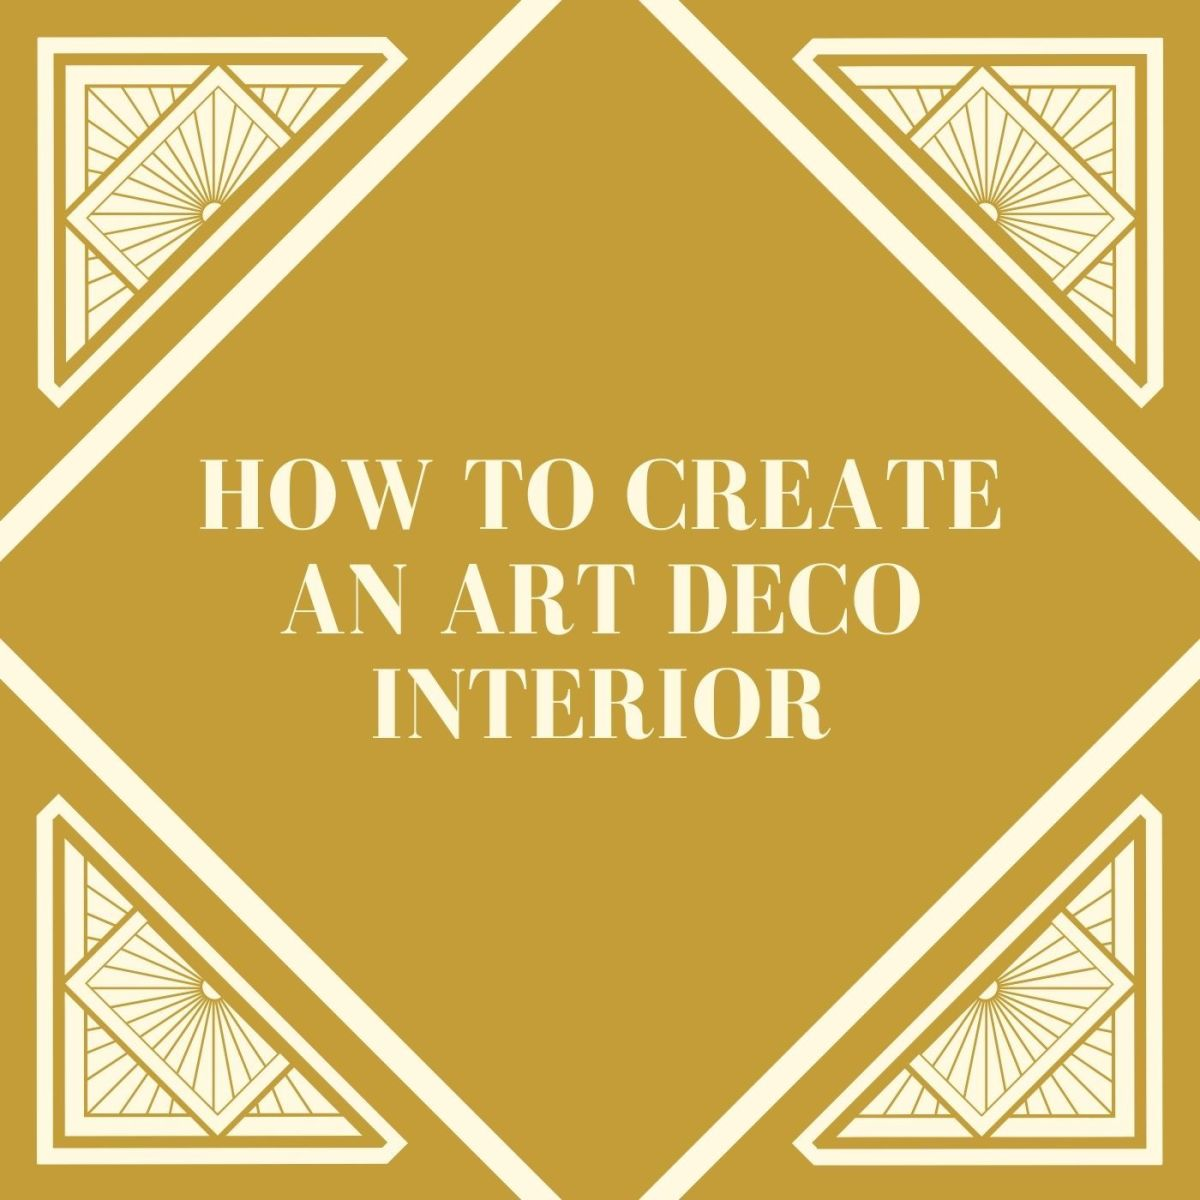 Read this article to get your Art Deco inspirations up and running.